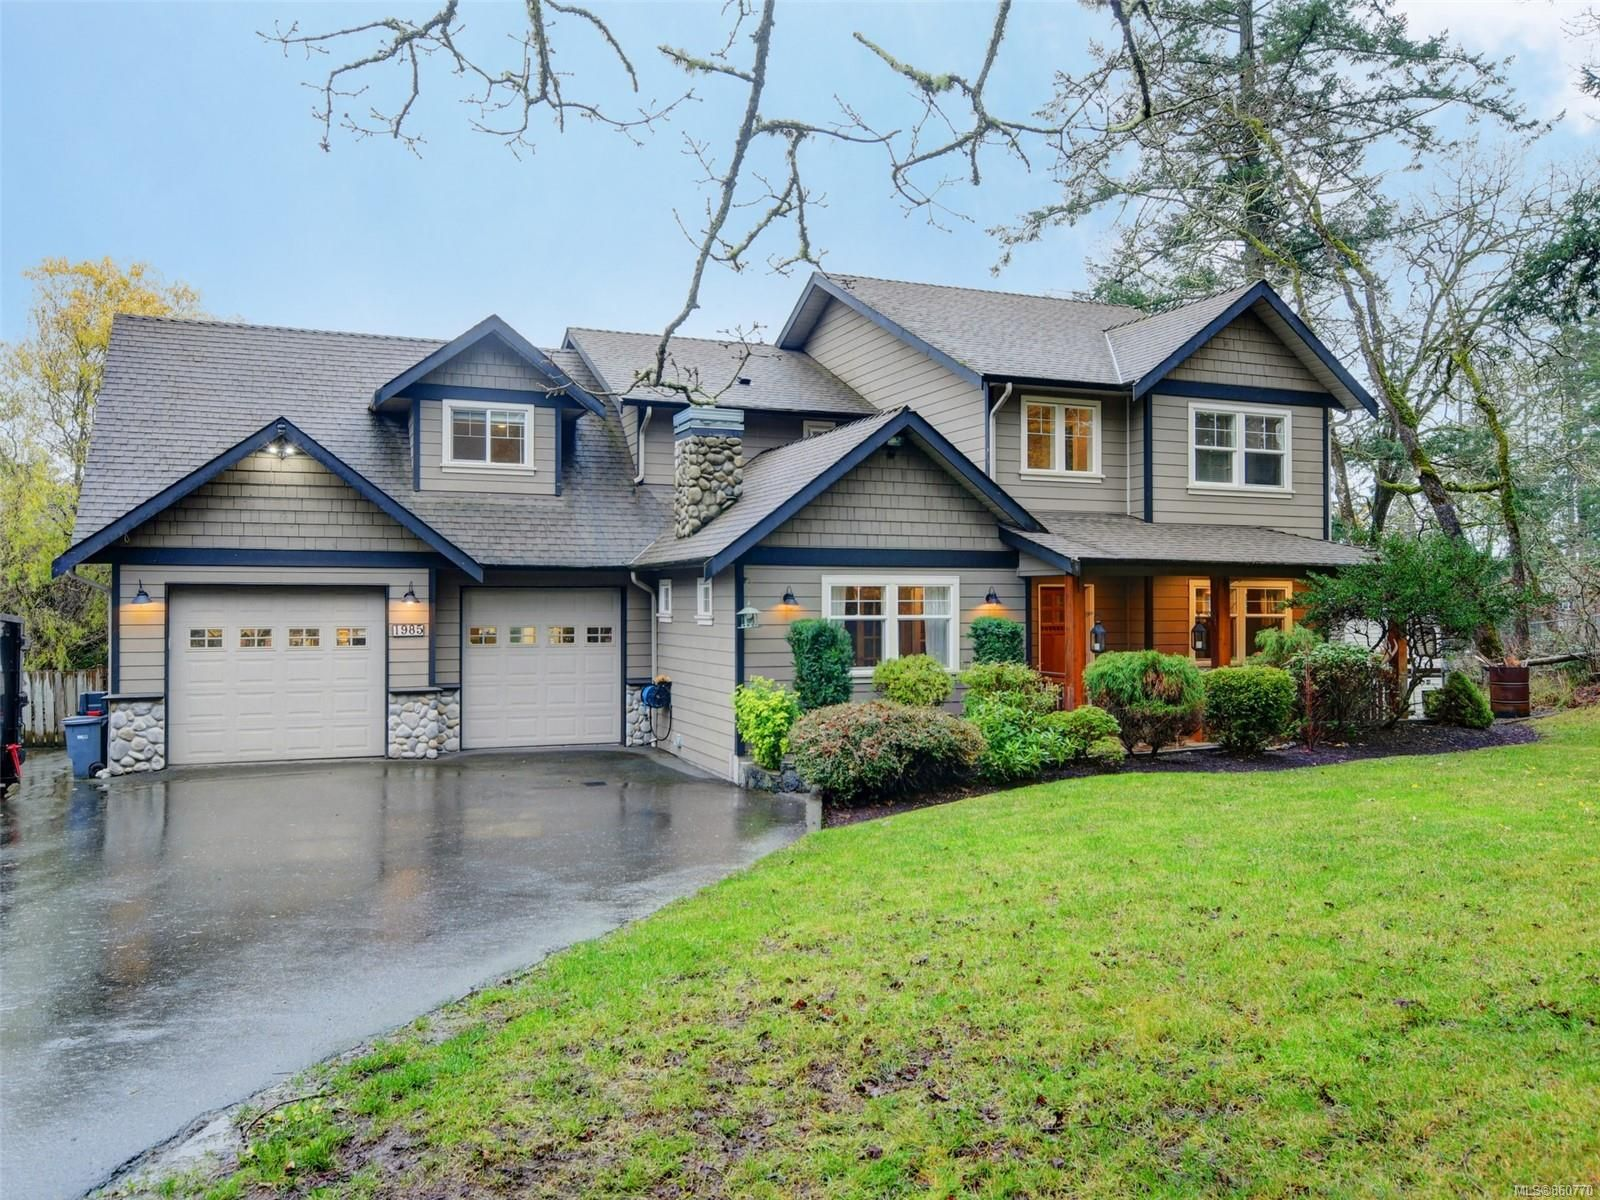 Main Photo: 1985 W Burnside Rd in : VR Prior Lake House for sale (View Royal)  : MLS®# 860770